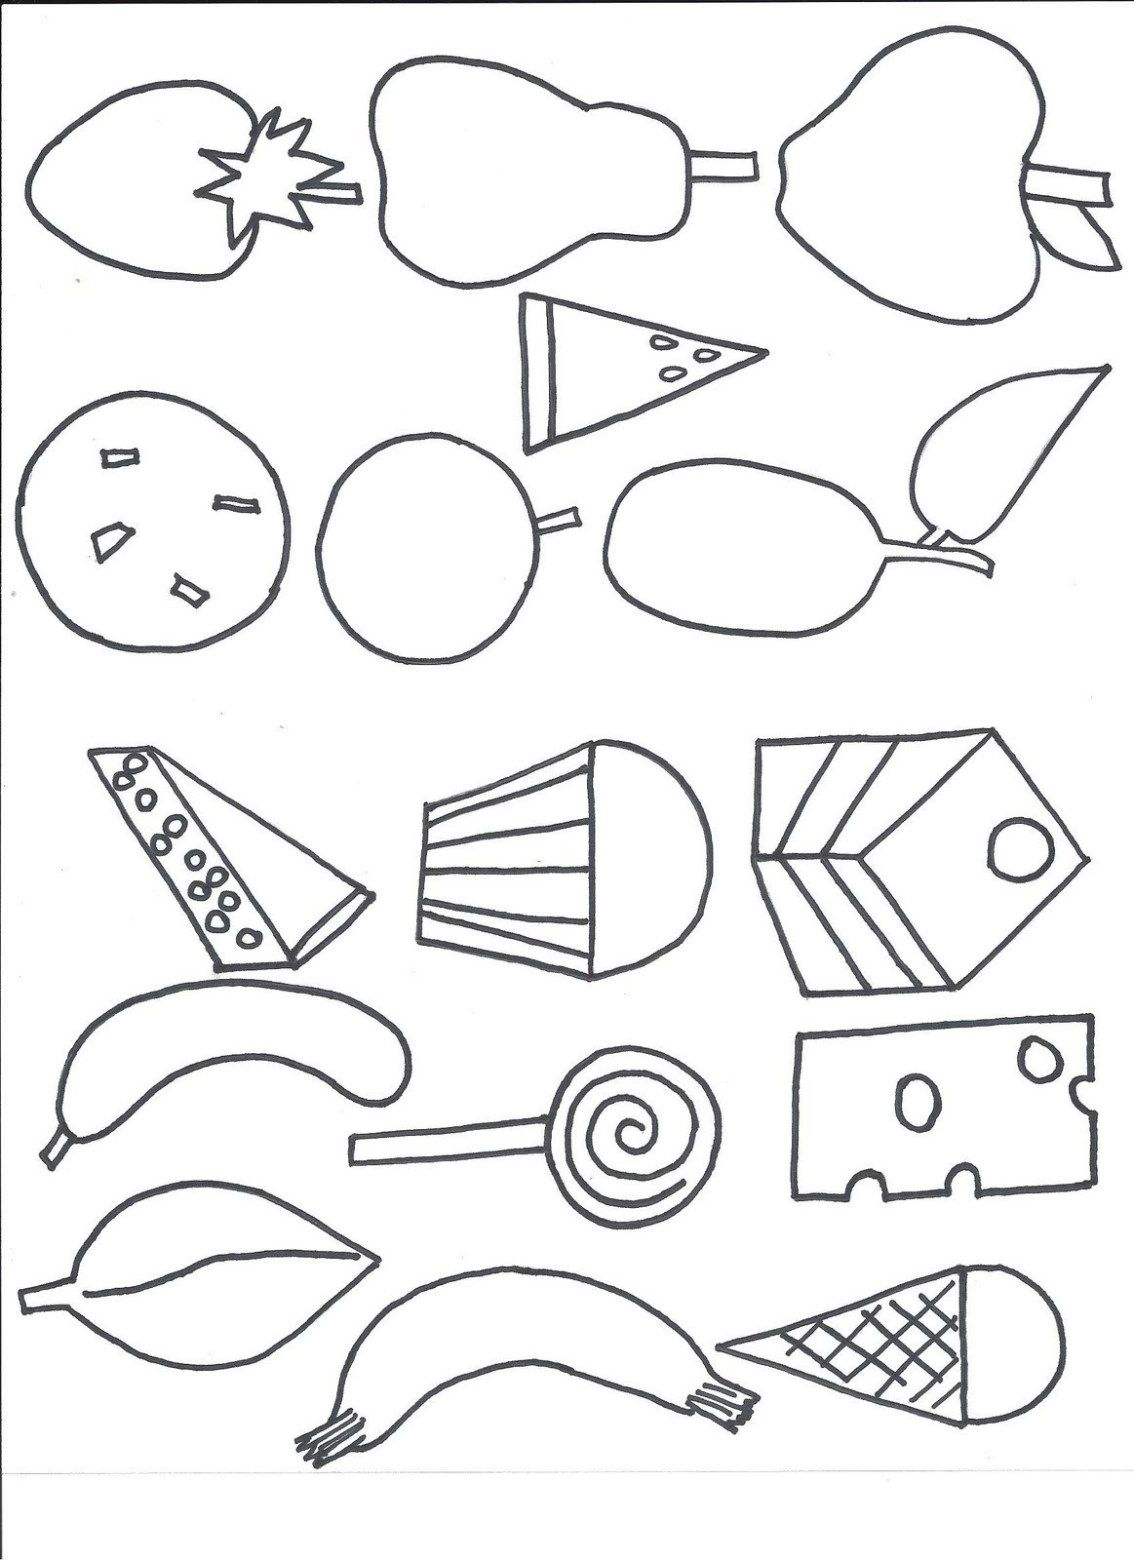 25 Awesome Picture Of Hungry Caterpillar Coloring Pages Entitlementtrap Com Very Hungry Caterpillar Coloring Pages Hungry Caterpillar Craft Hungry Caterpillar Coloring Pages